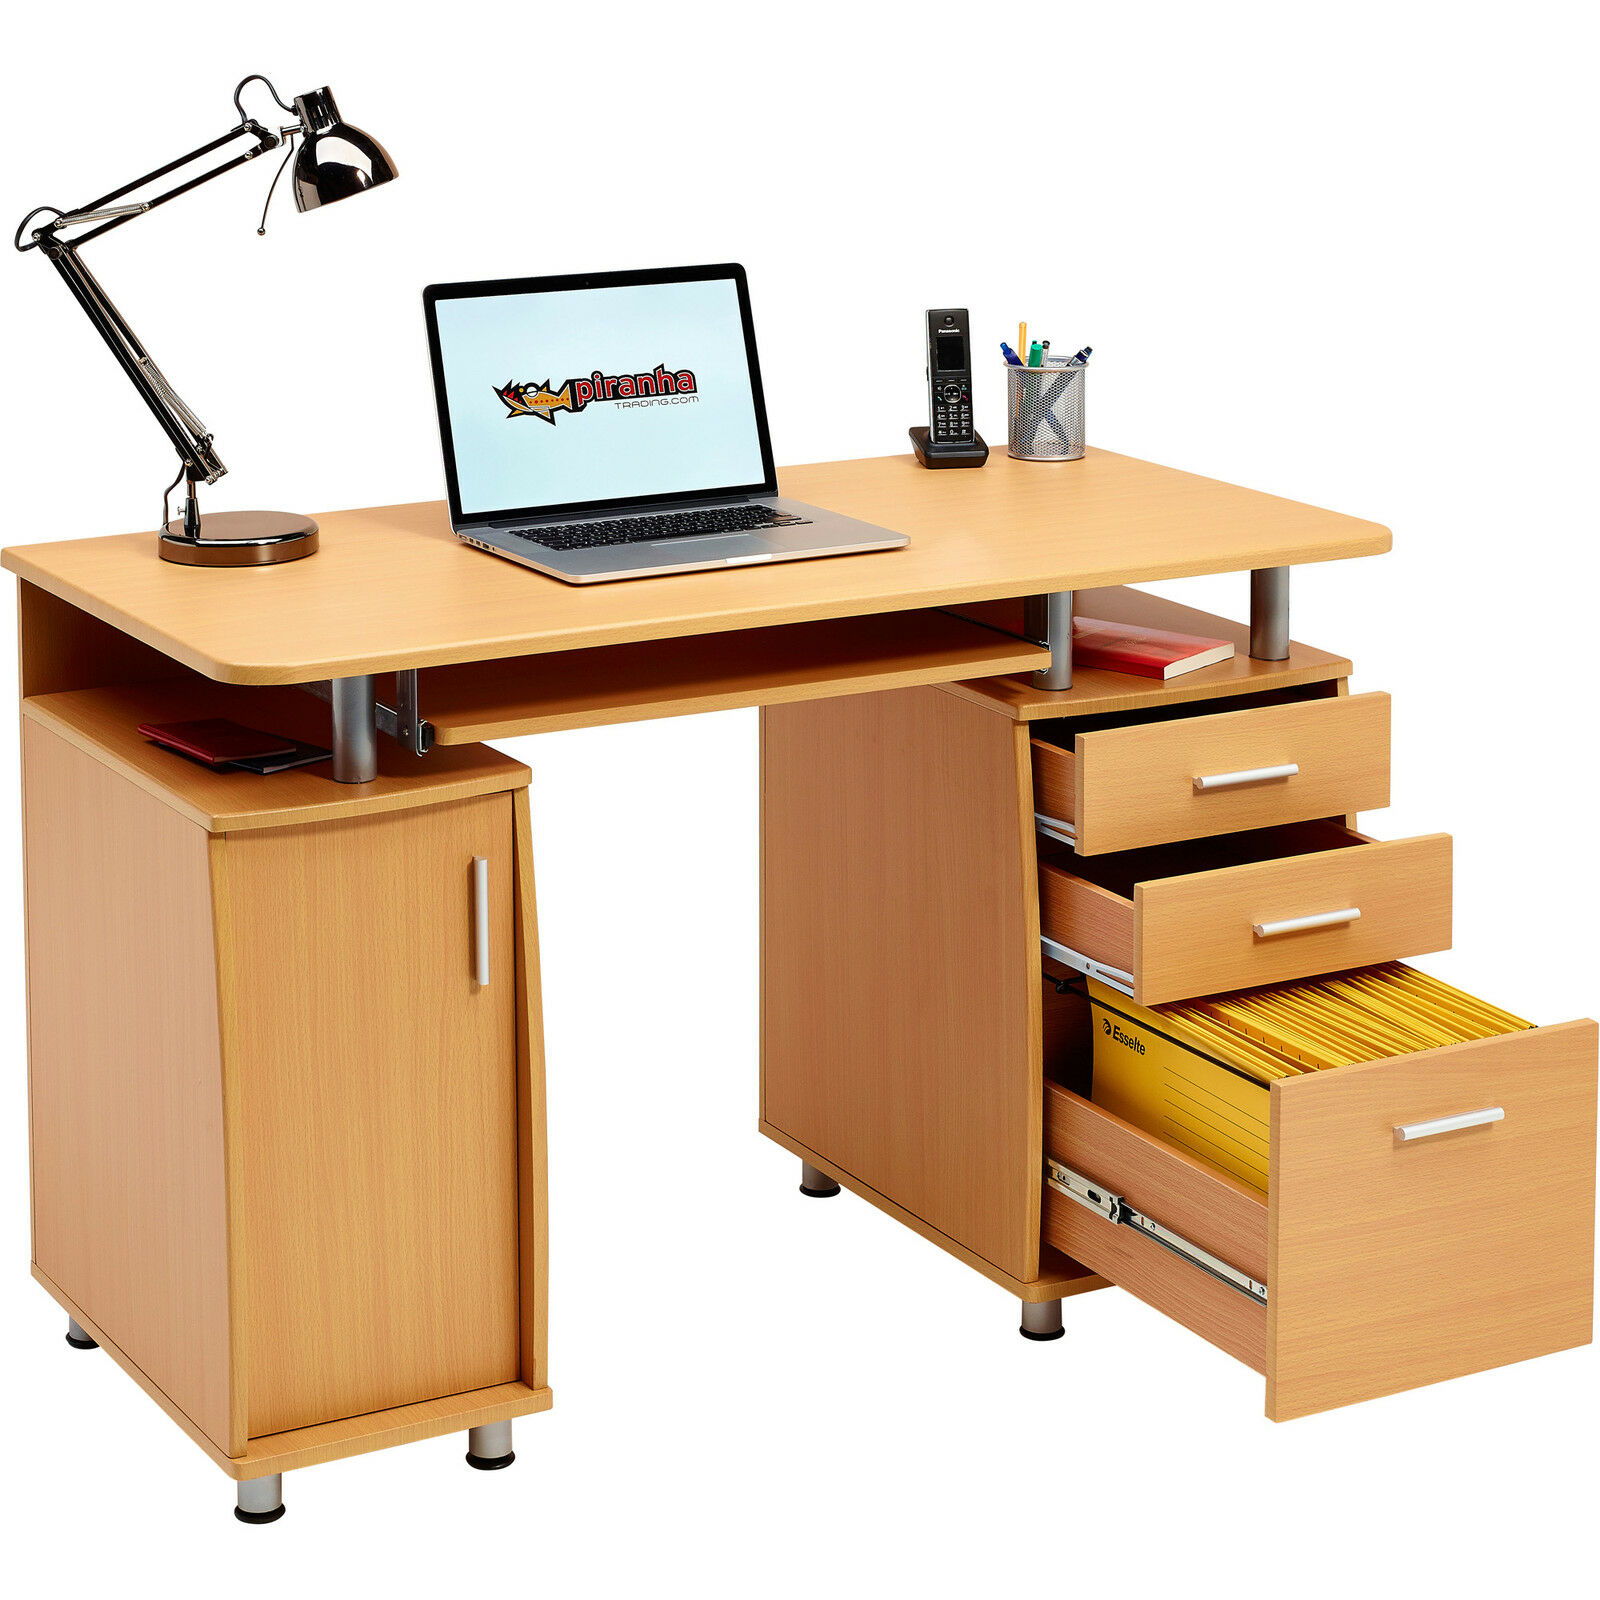 large computer desk with drawer and cupboard piranha furniture beech effect pc2b. Black Bedroom Furniture Sets. Home Design Ideas